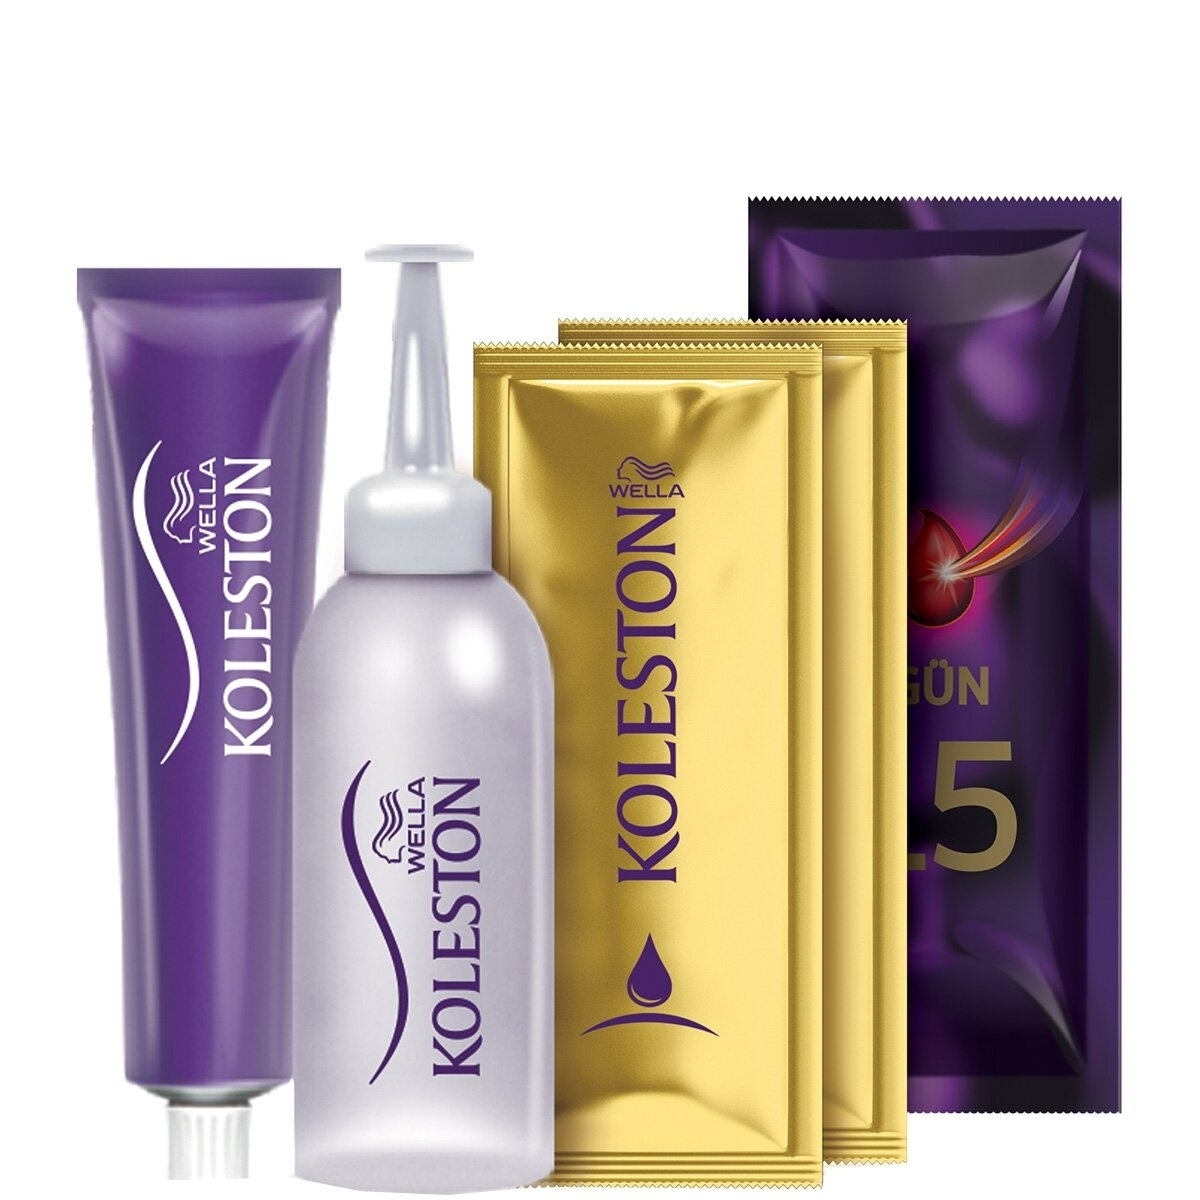 Kit Saç Boyası Extra Intense Ash Blonde 12/11